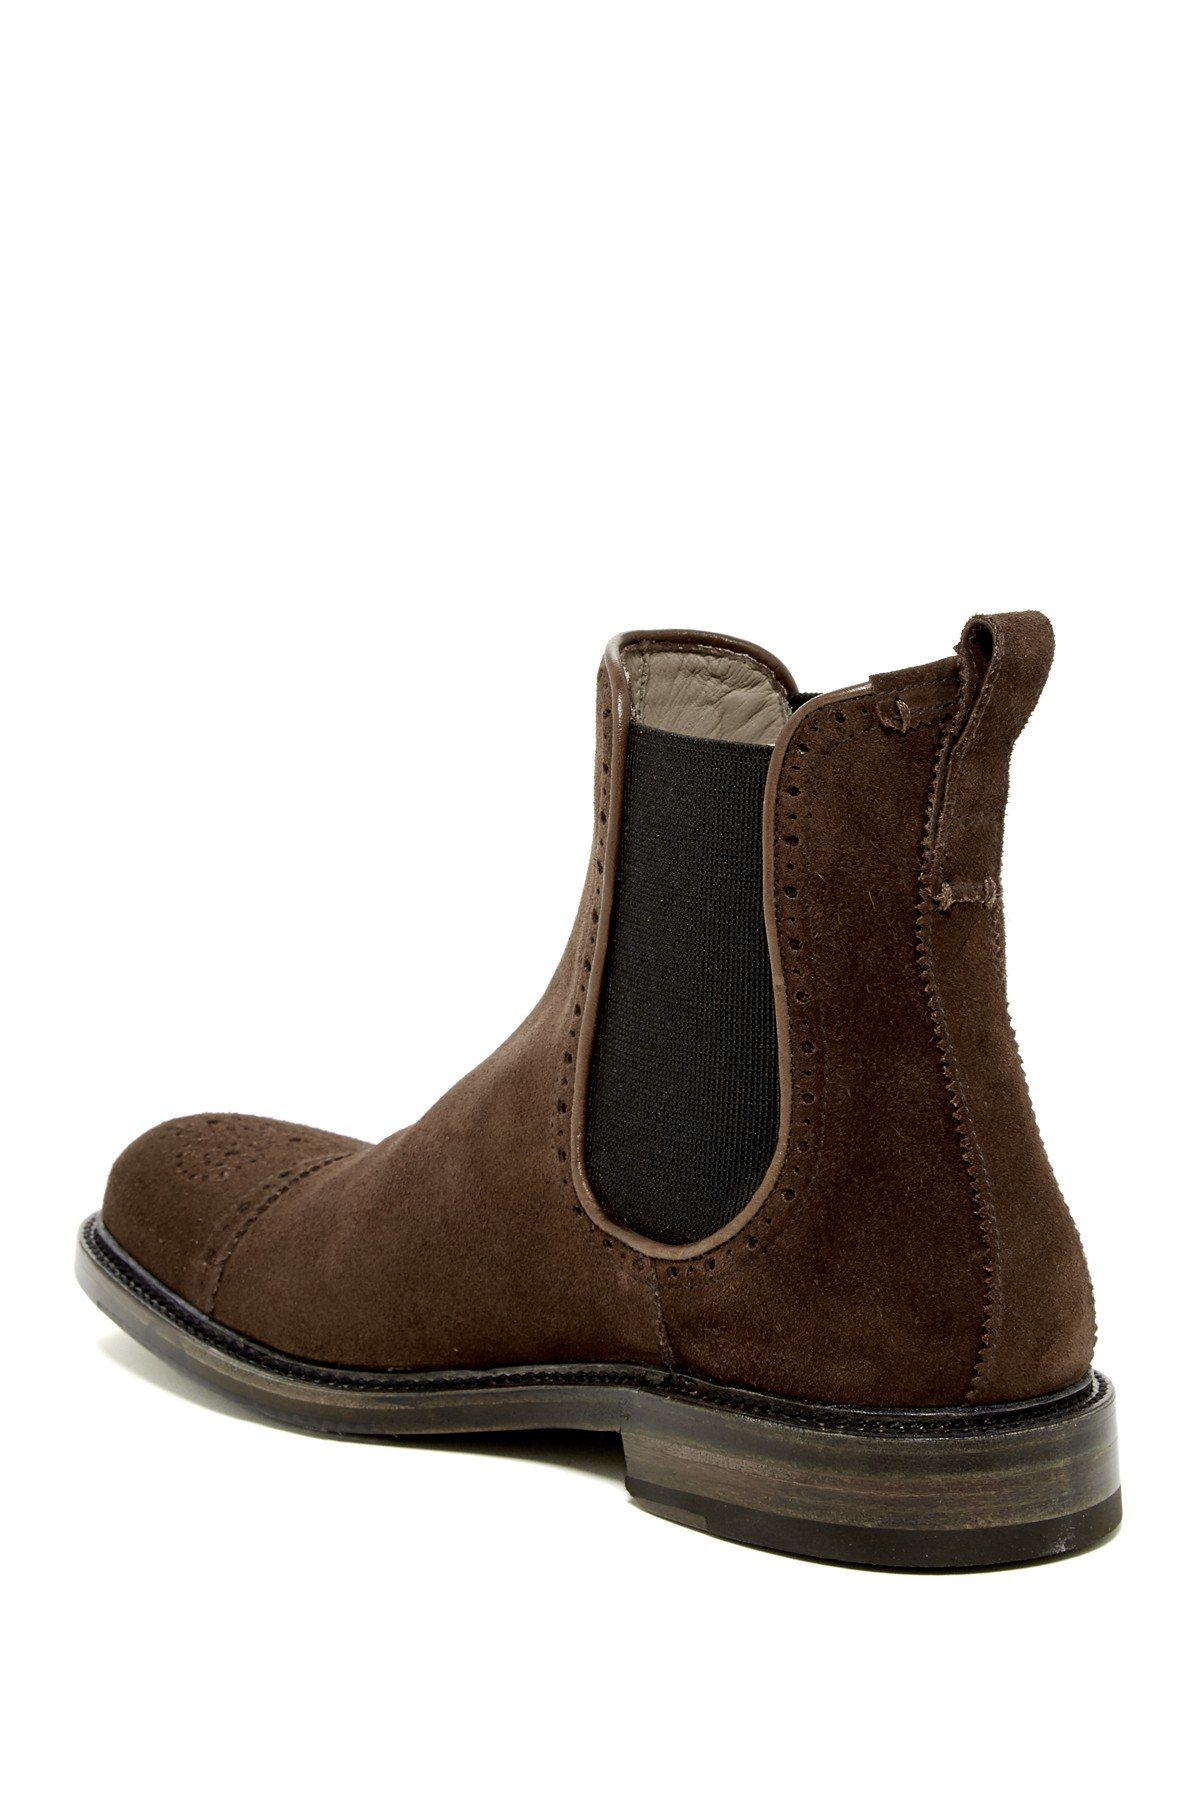 Aquatalia Freddy Weatherproof Chelsea Boot In Brown For